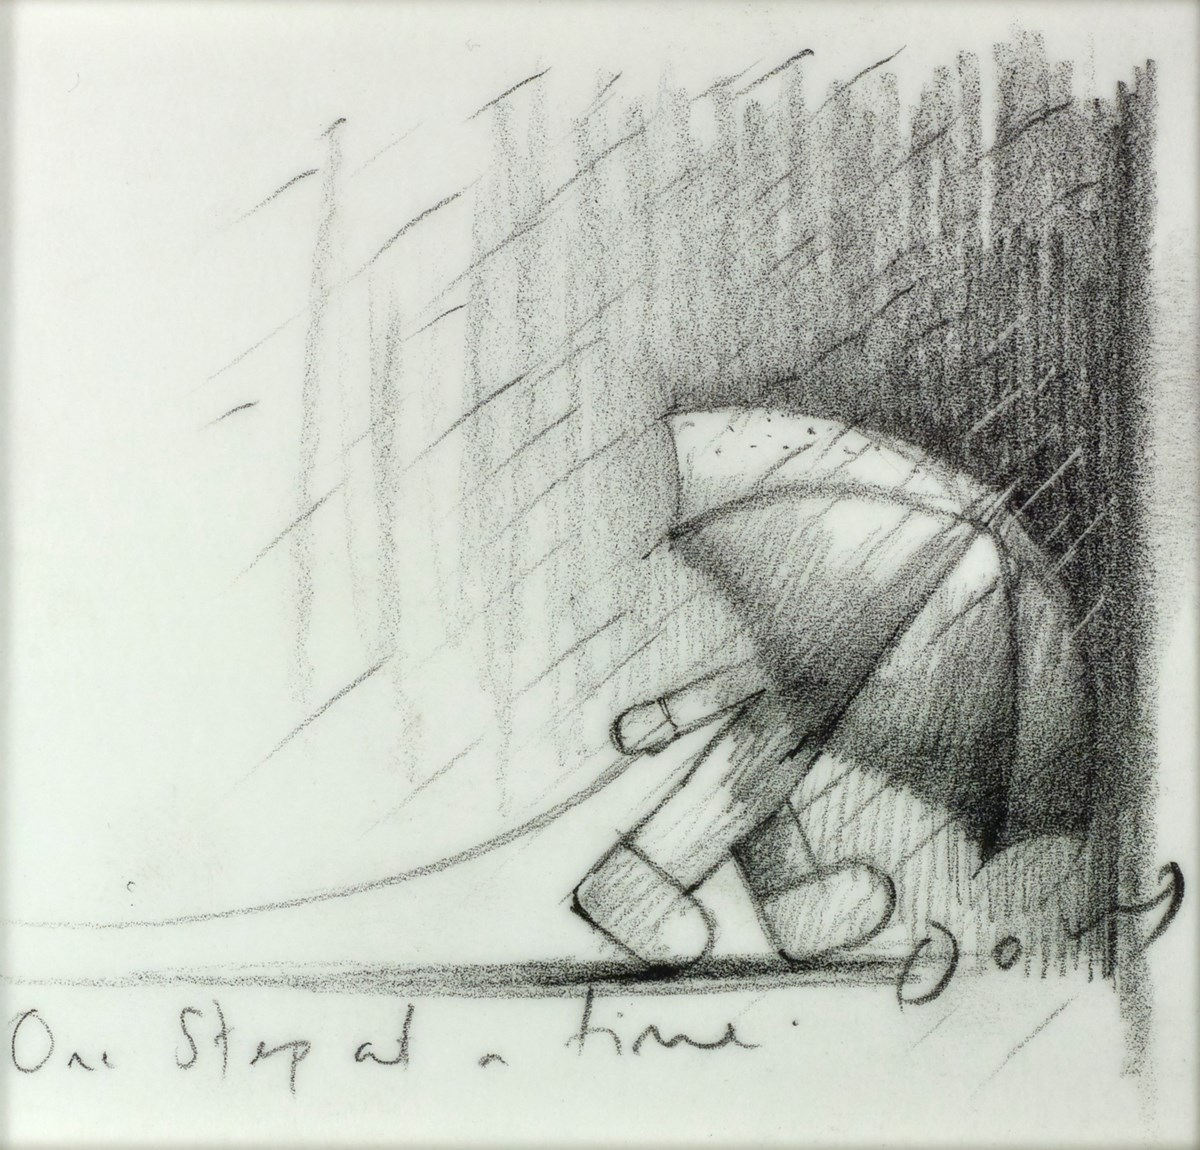 One Step at a Time (Study)